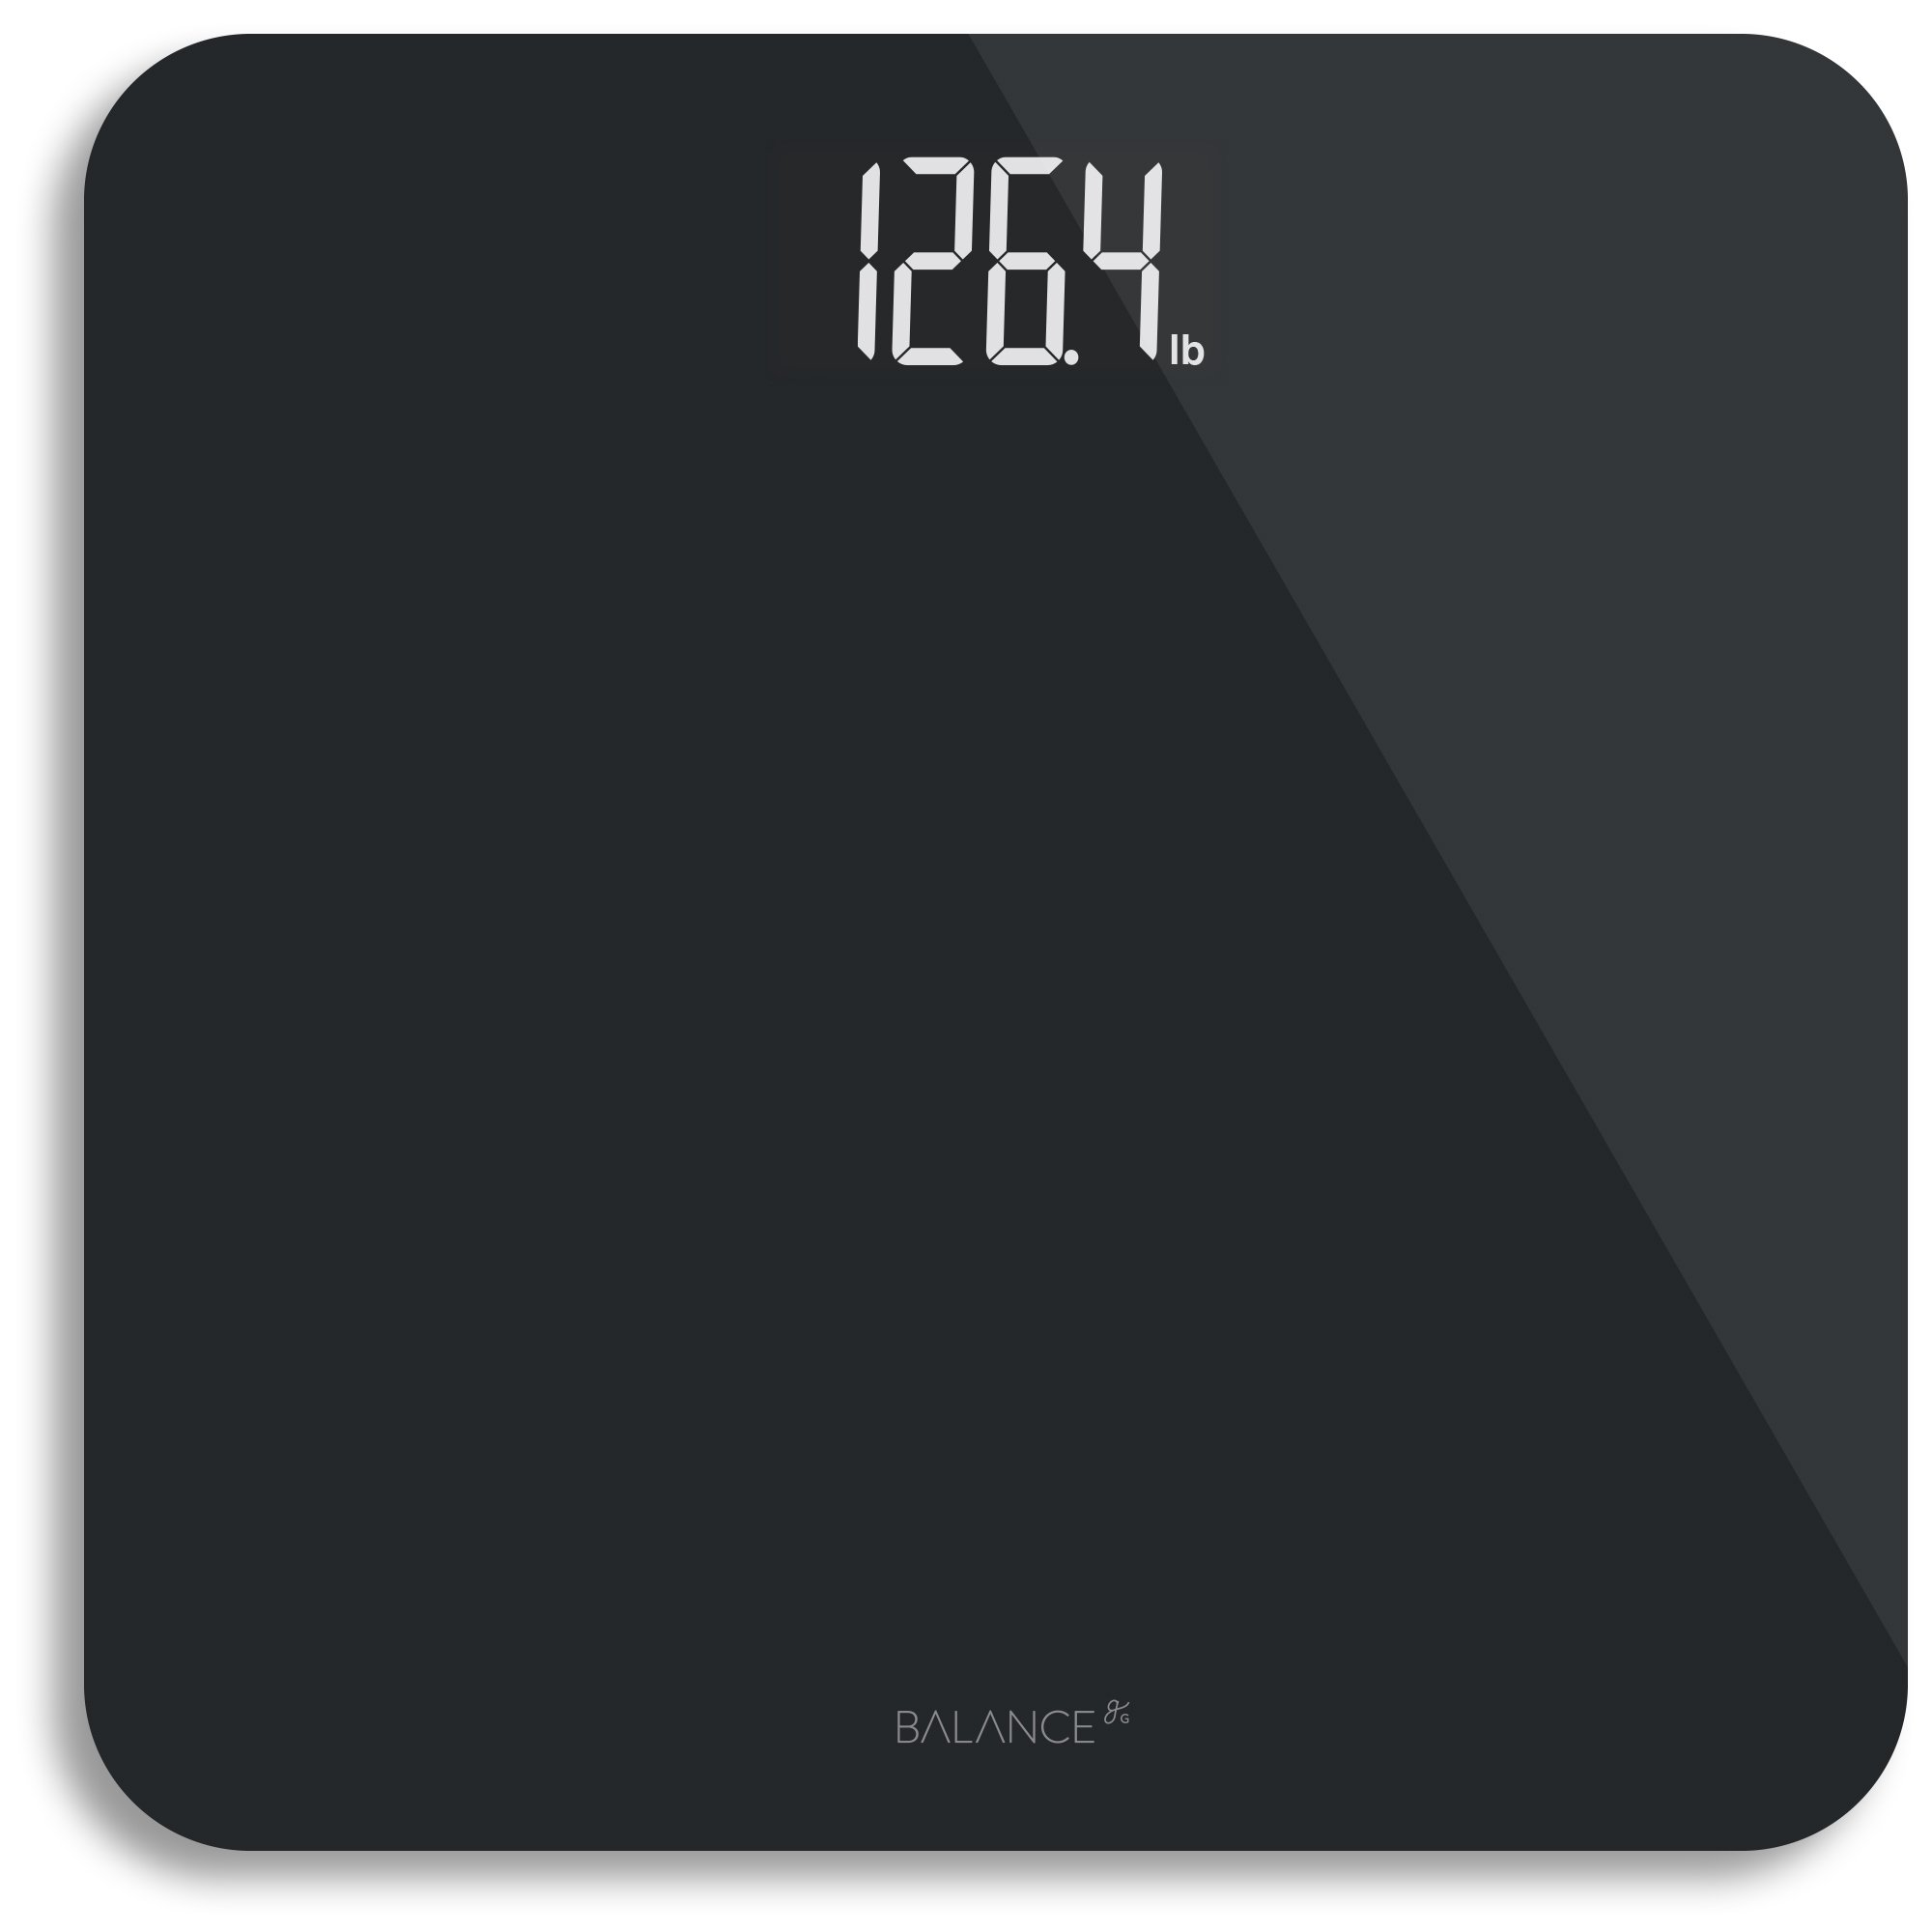 sinbo online scales product group categories dinapala scale digital mall sbs bathroom category